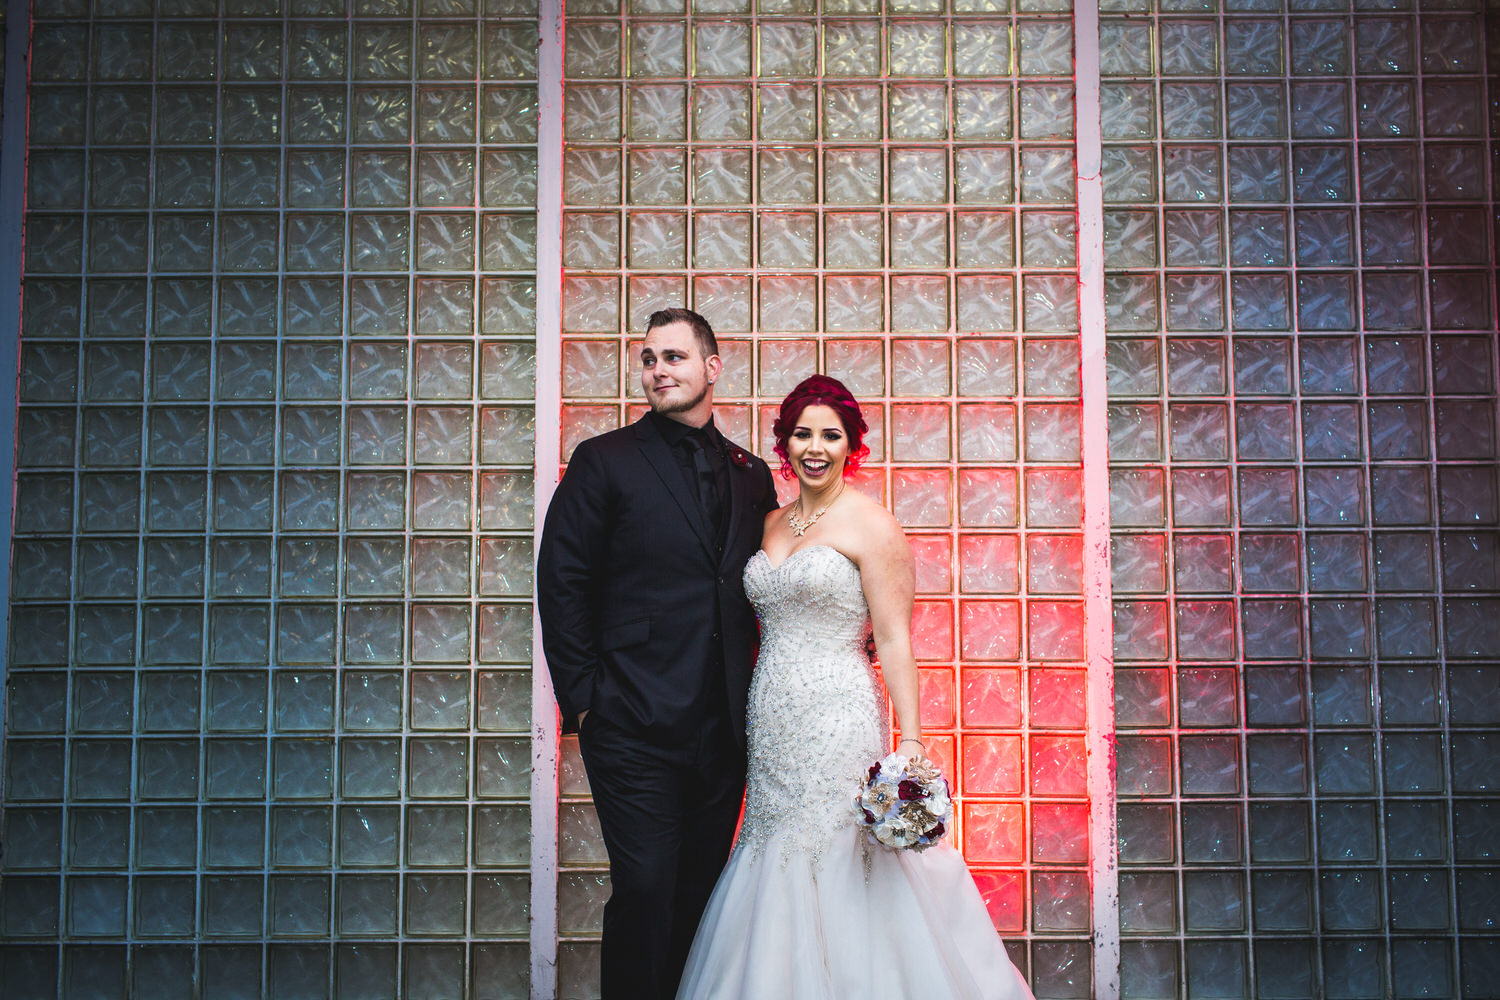 Outdoor wedding photography in Richmond BC